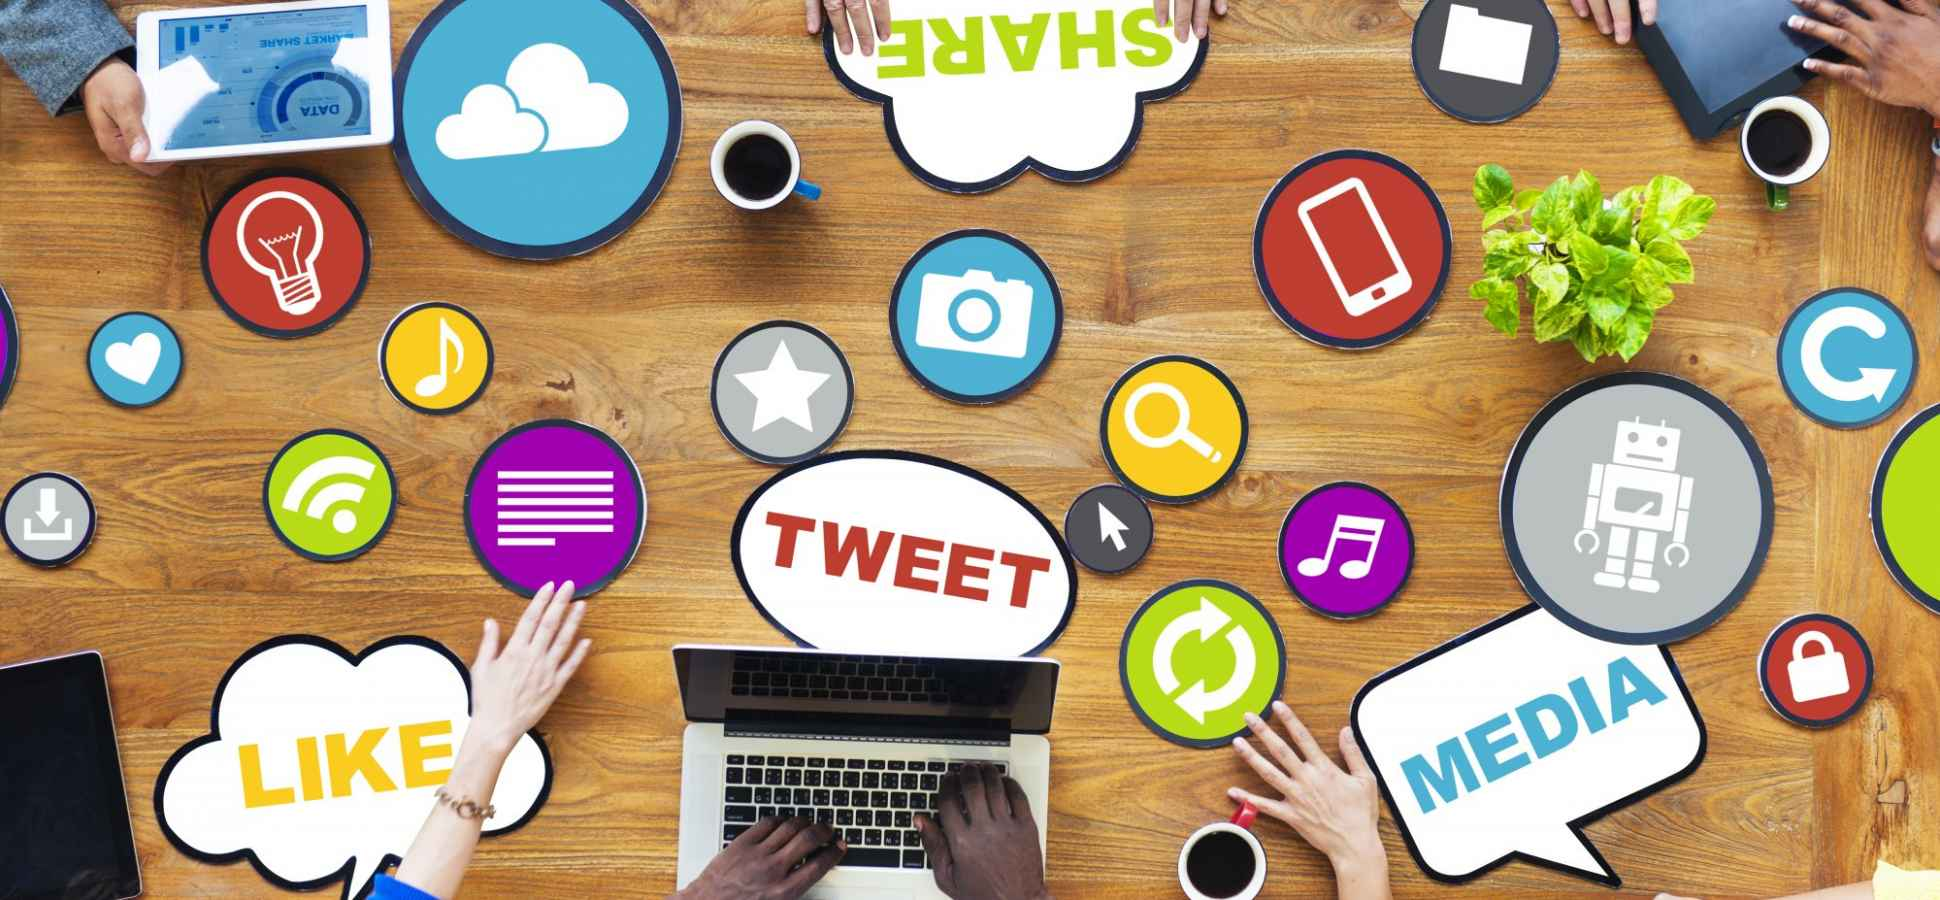 3 Ways to Leverage Social Media Without Wasting Time or Money